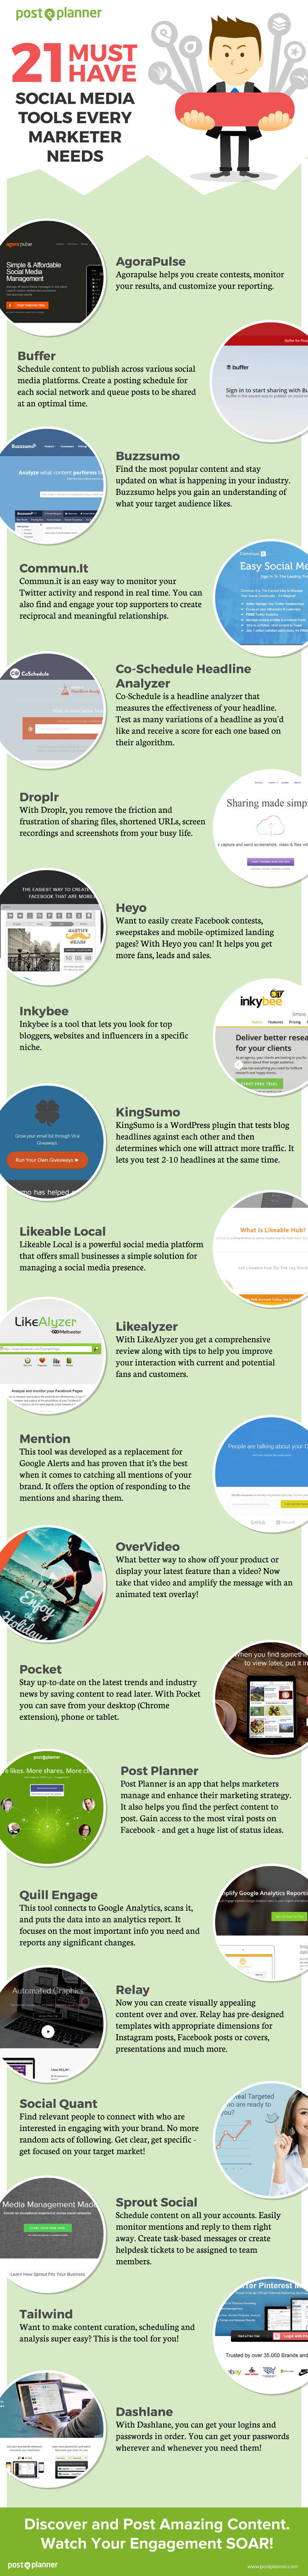 Social-Media-Tools-Marketer-Needs-Infographic-1